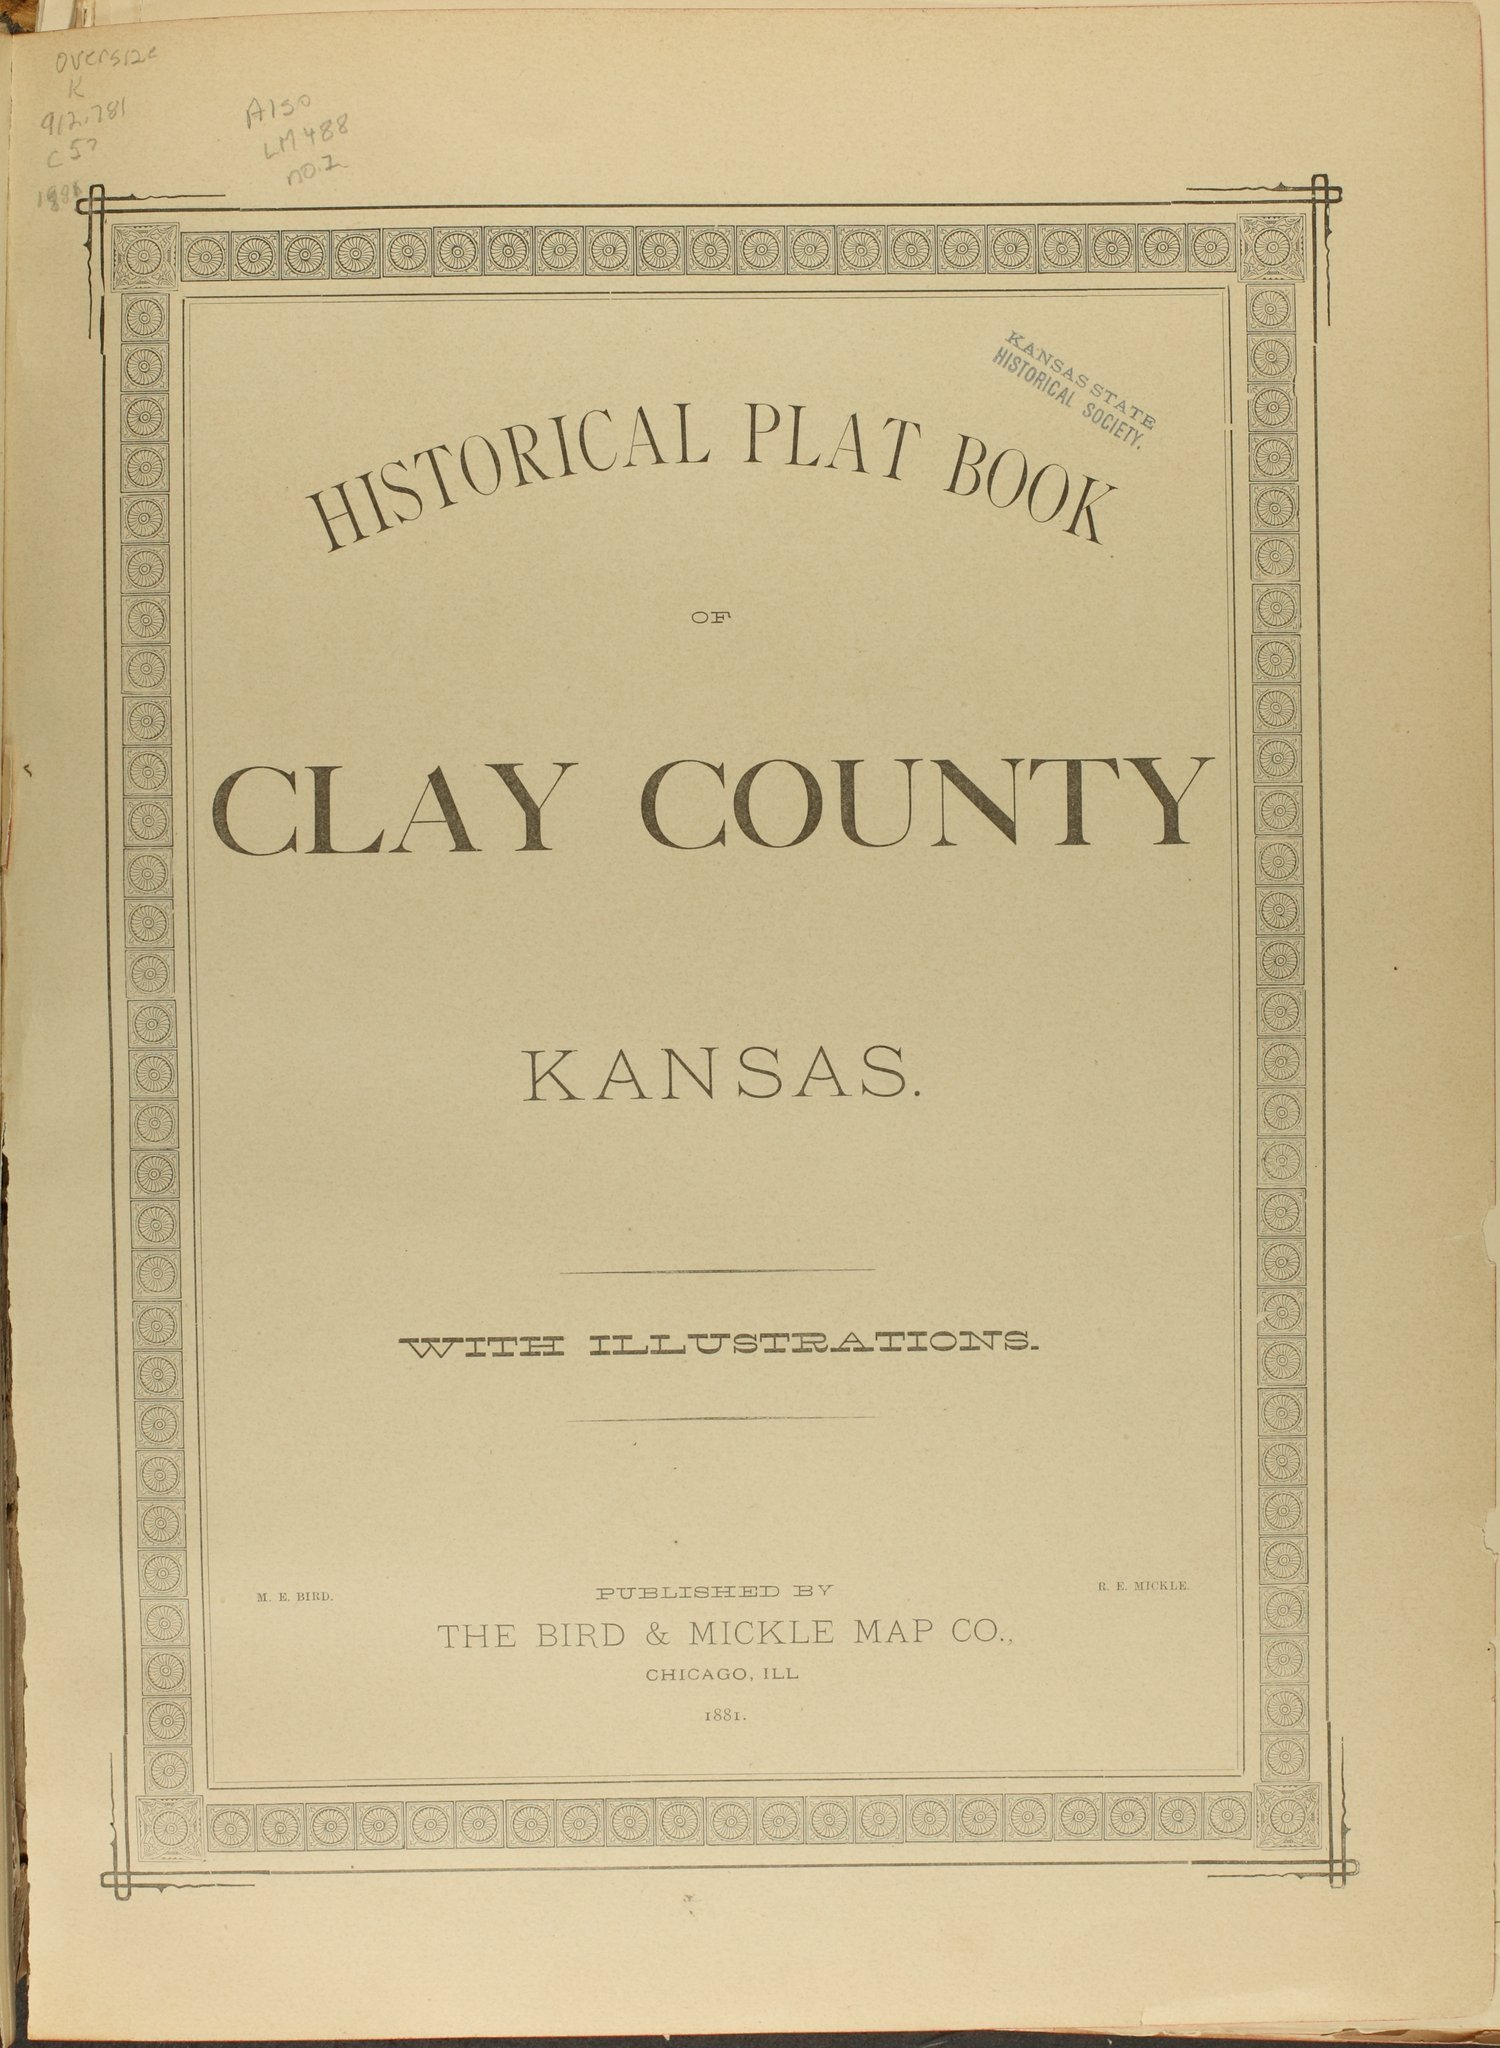 Historical plat book of Clay County, Kansas - Title Page